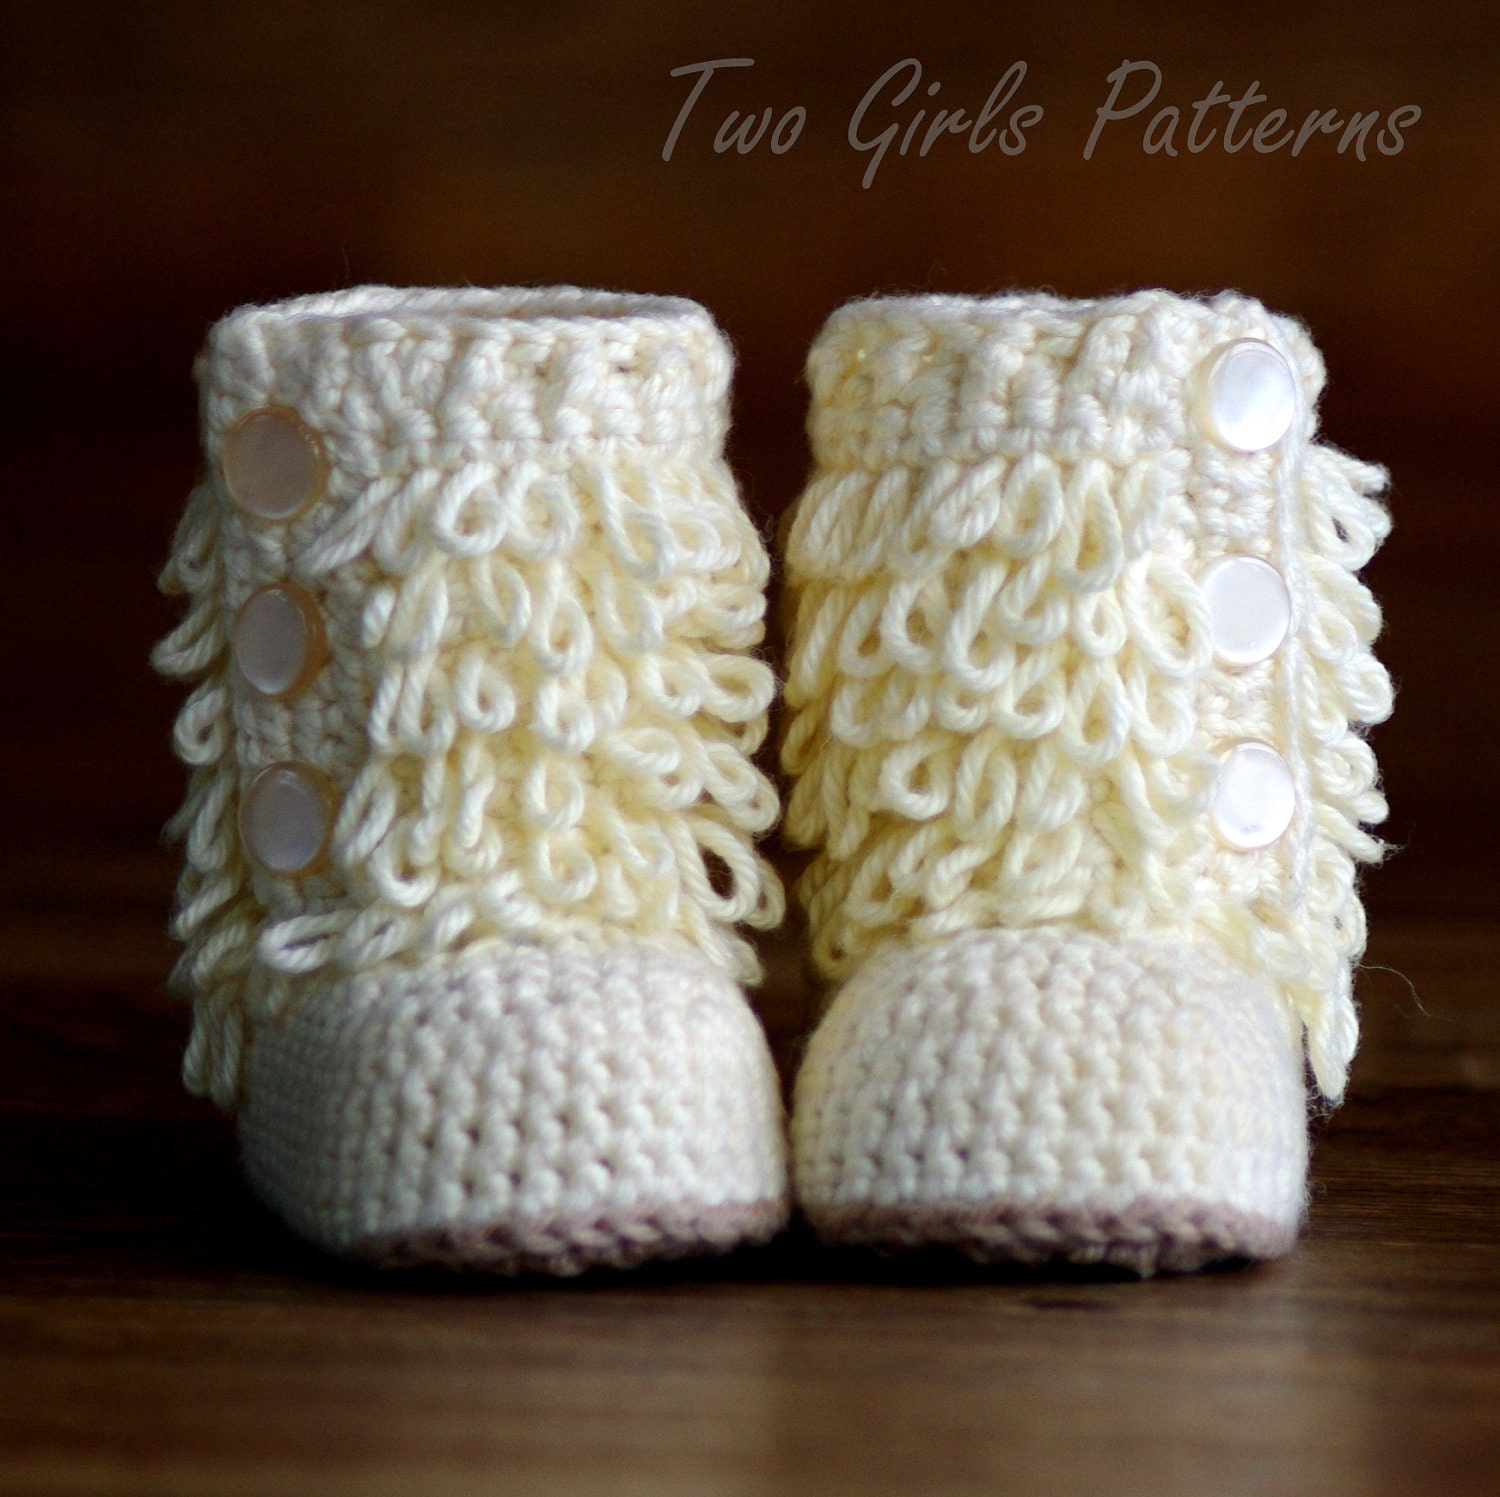 Crochet pattern 200 baby furrylicious boots loopy crochet zoom bankloansurffo Images